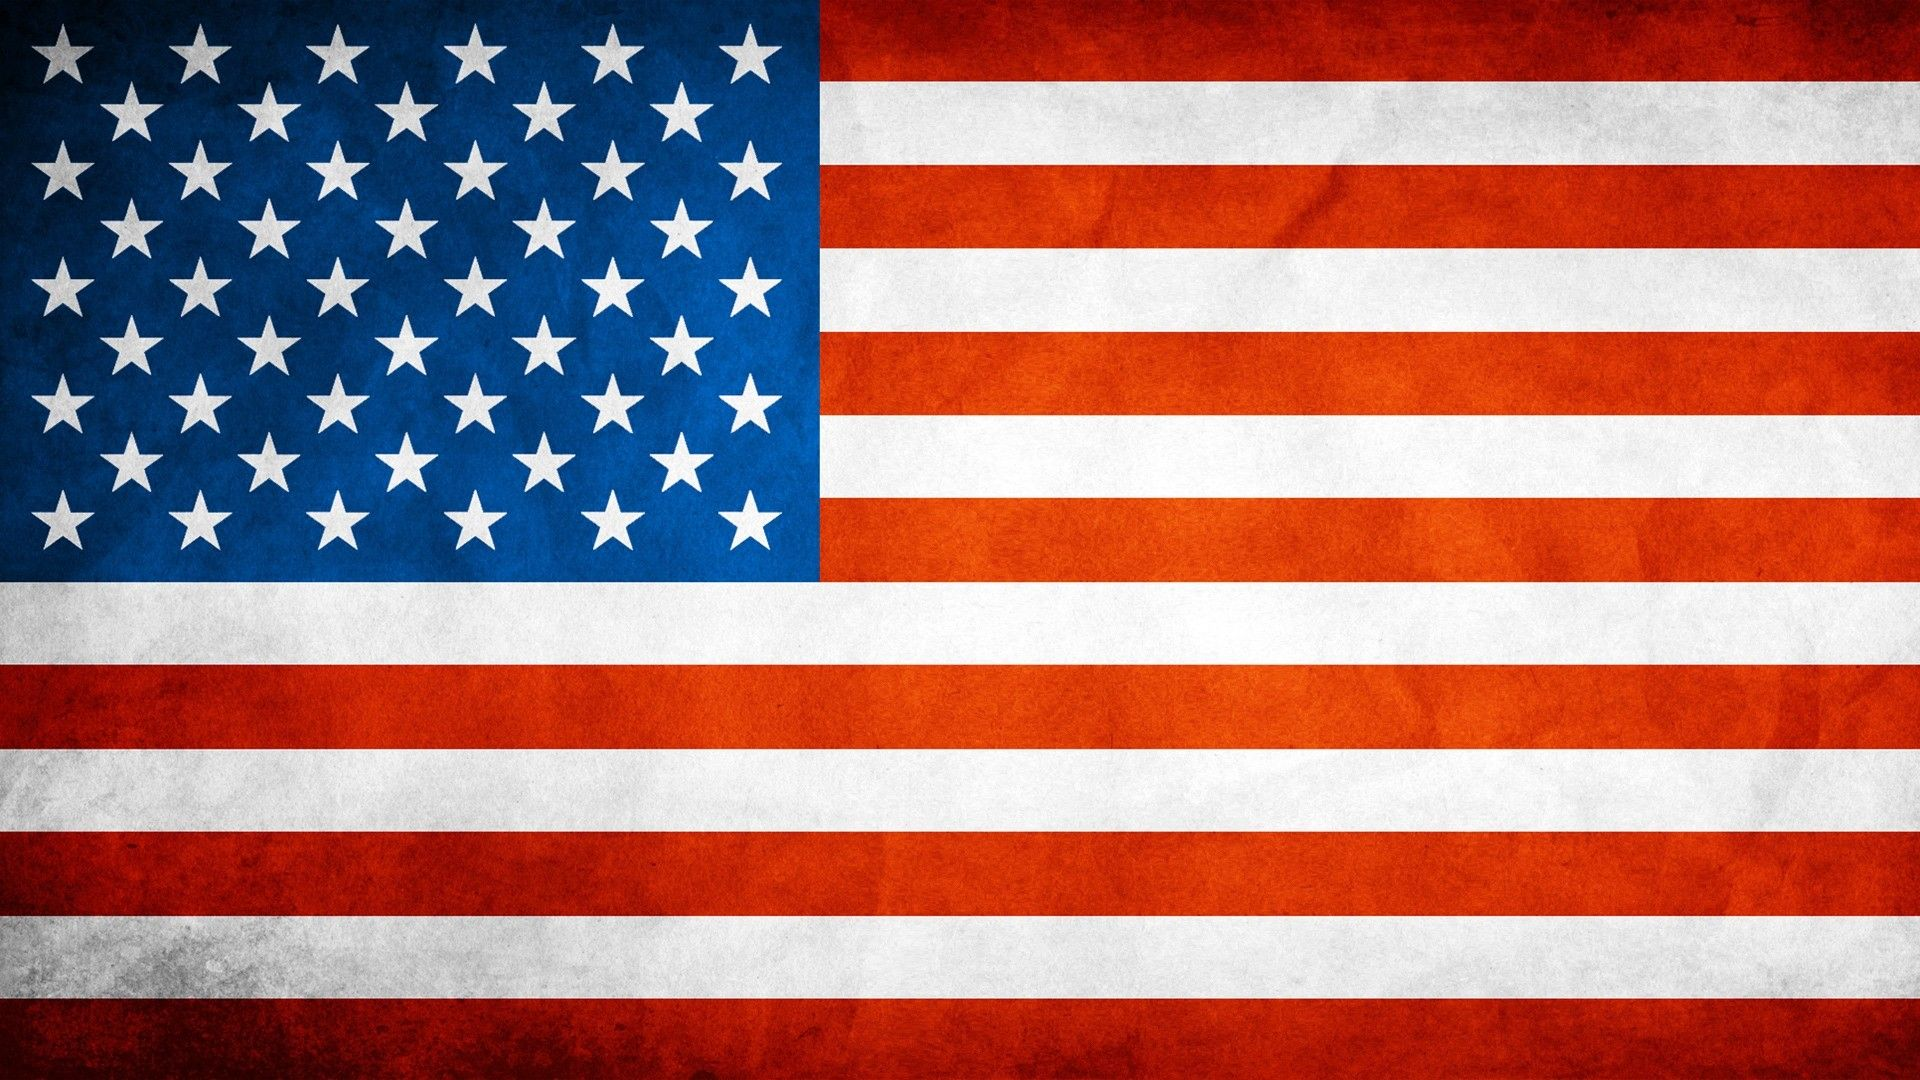 American Usa Flags American Flag Images American Flag Wallpaper Usa Flag Images